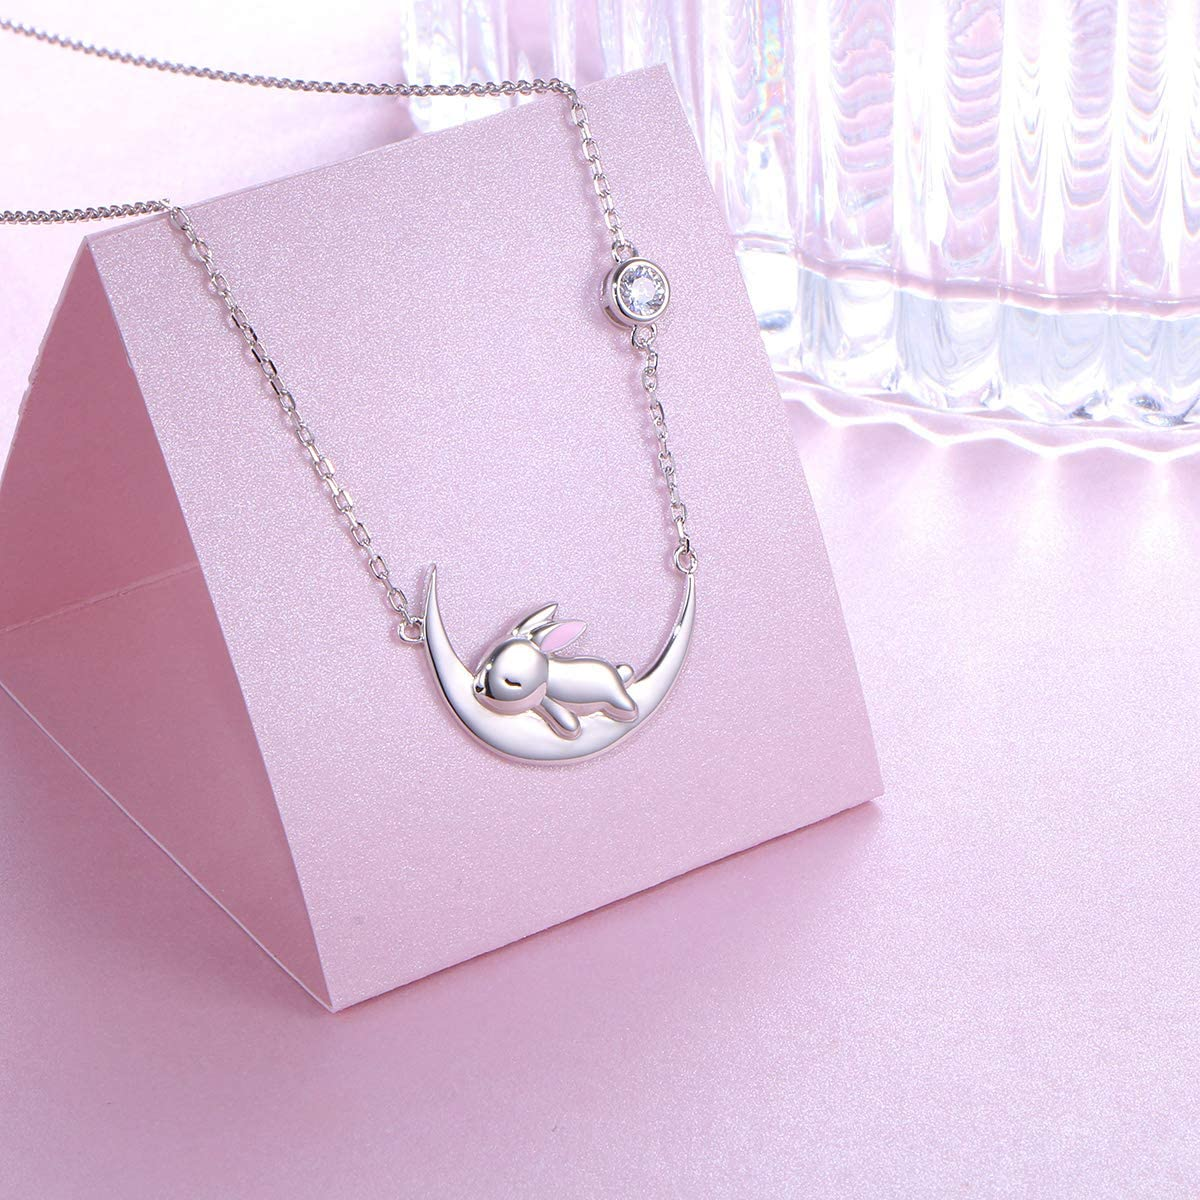 Rabbit Necklace For Women In Sterling Silver 925 Girls Bunny Pendant Jewellery Animal Pet Gift Birthday Anniversary Present Wife Mother Daughter Friend Gran Aunt Niece